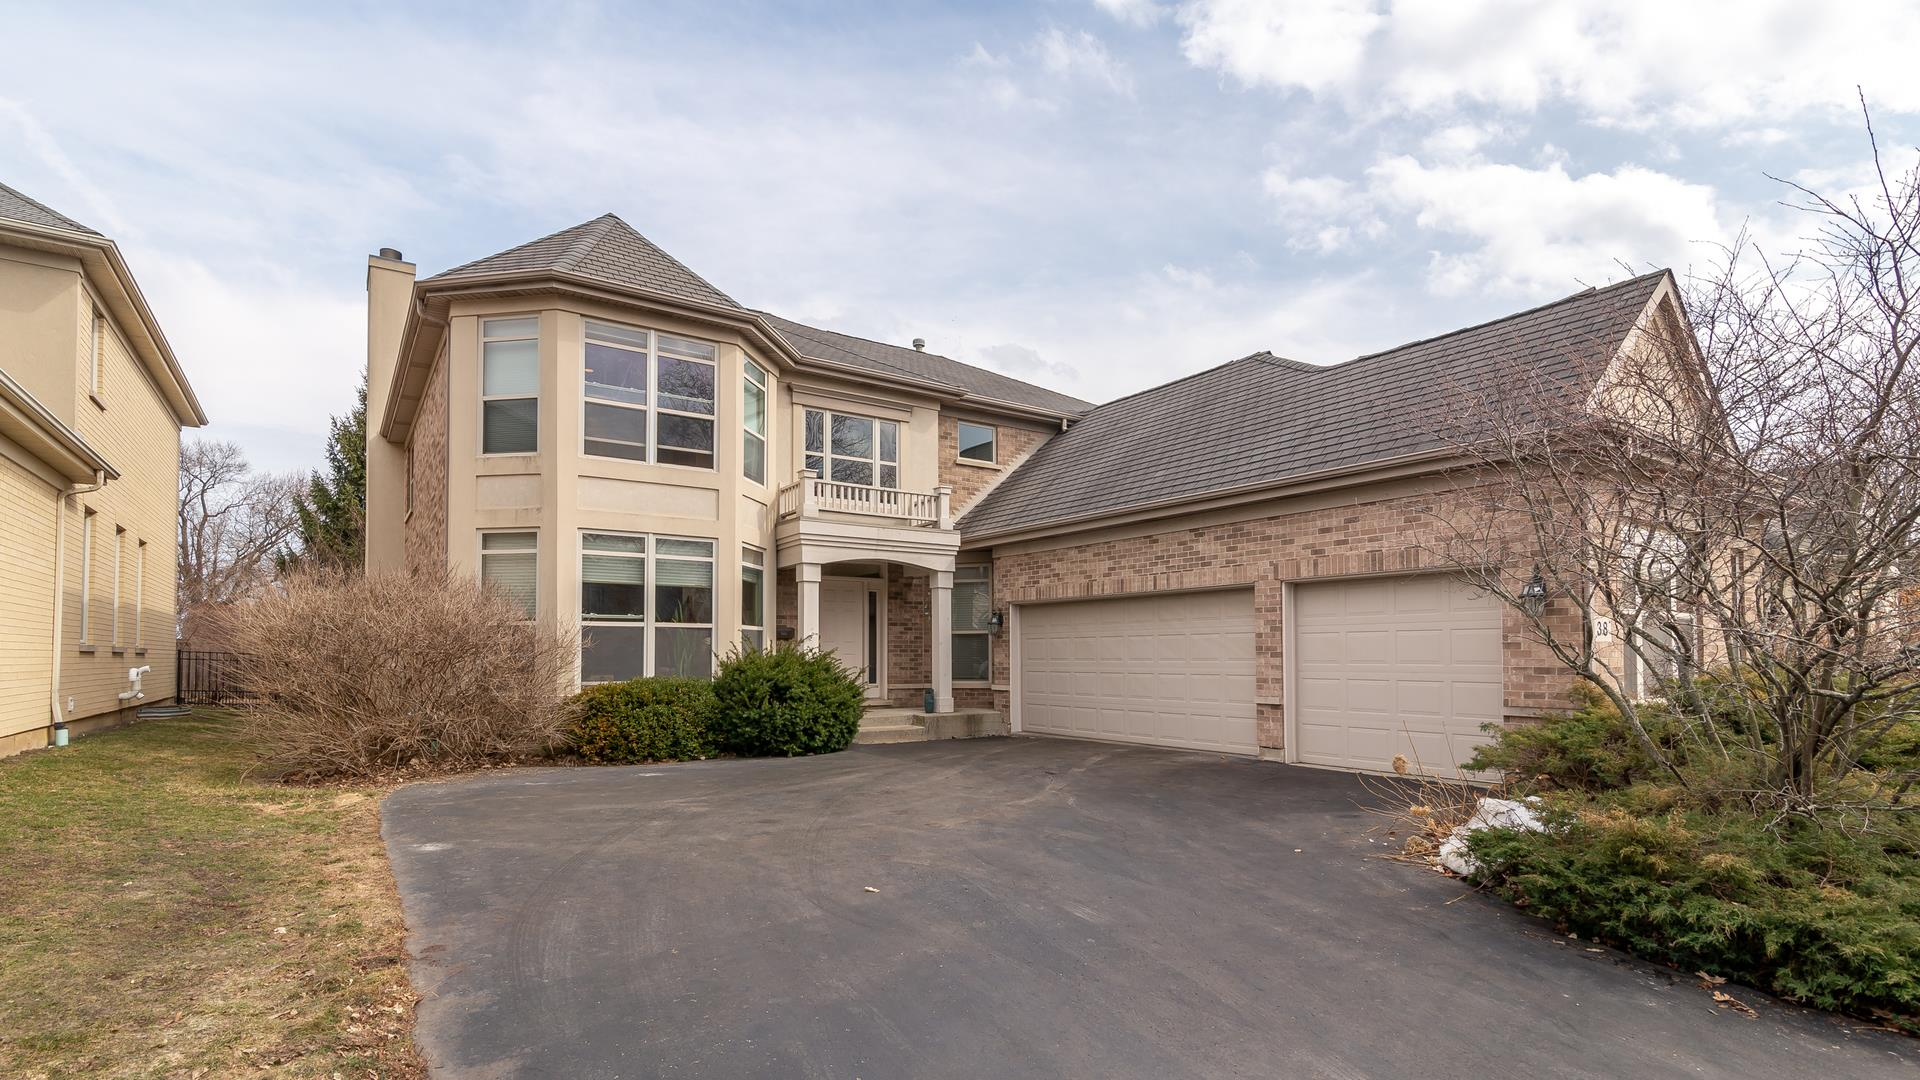 38 Holabird Loop, Highwood, IL 60040 - #: 11019323